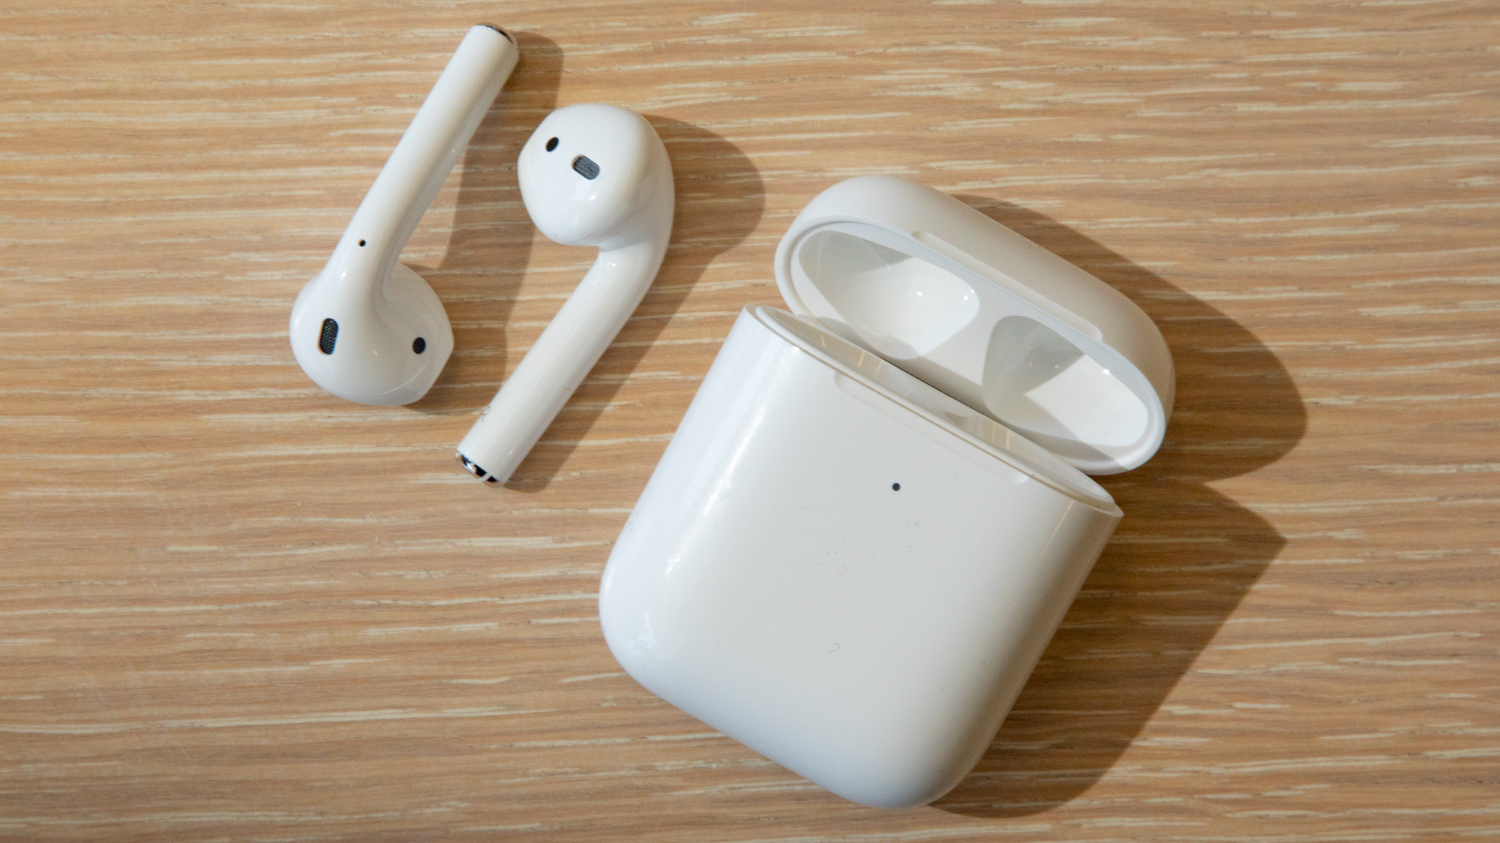 Airpods 2 Vs Airpods What S Different Tom S Guide